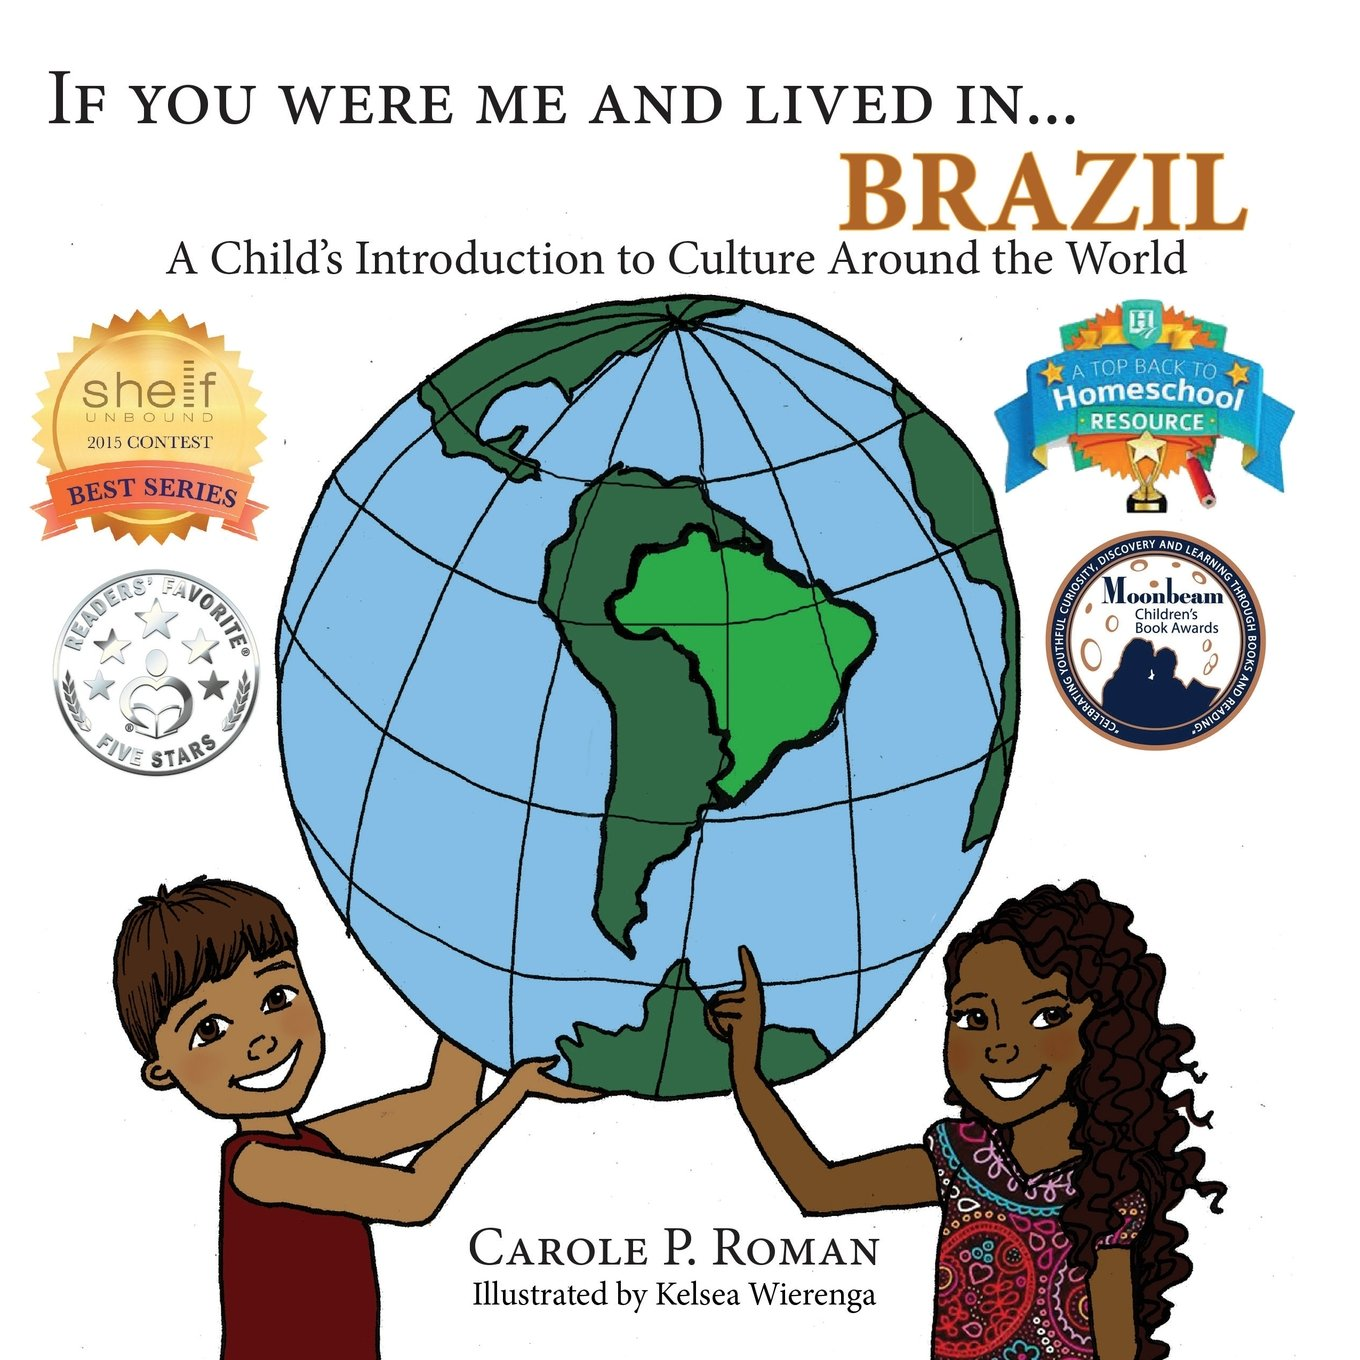 If You Were Me and Lived In... Brazil: A Child's Introduction to Cultures Around the World